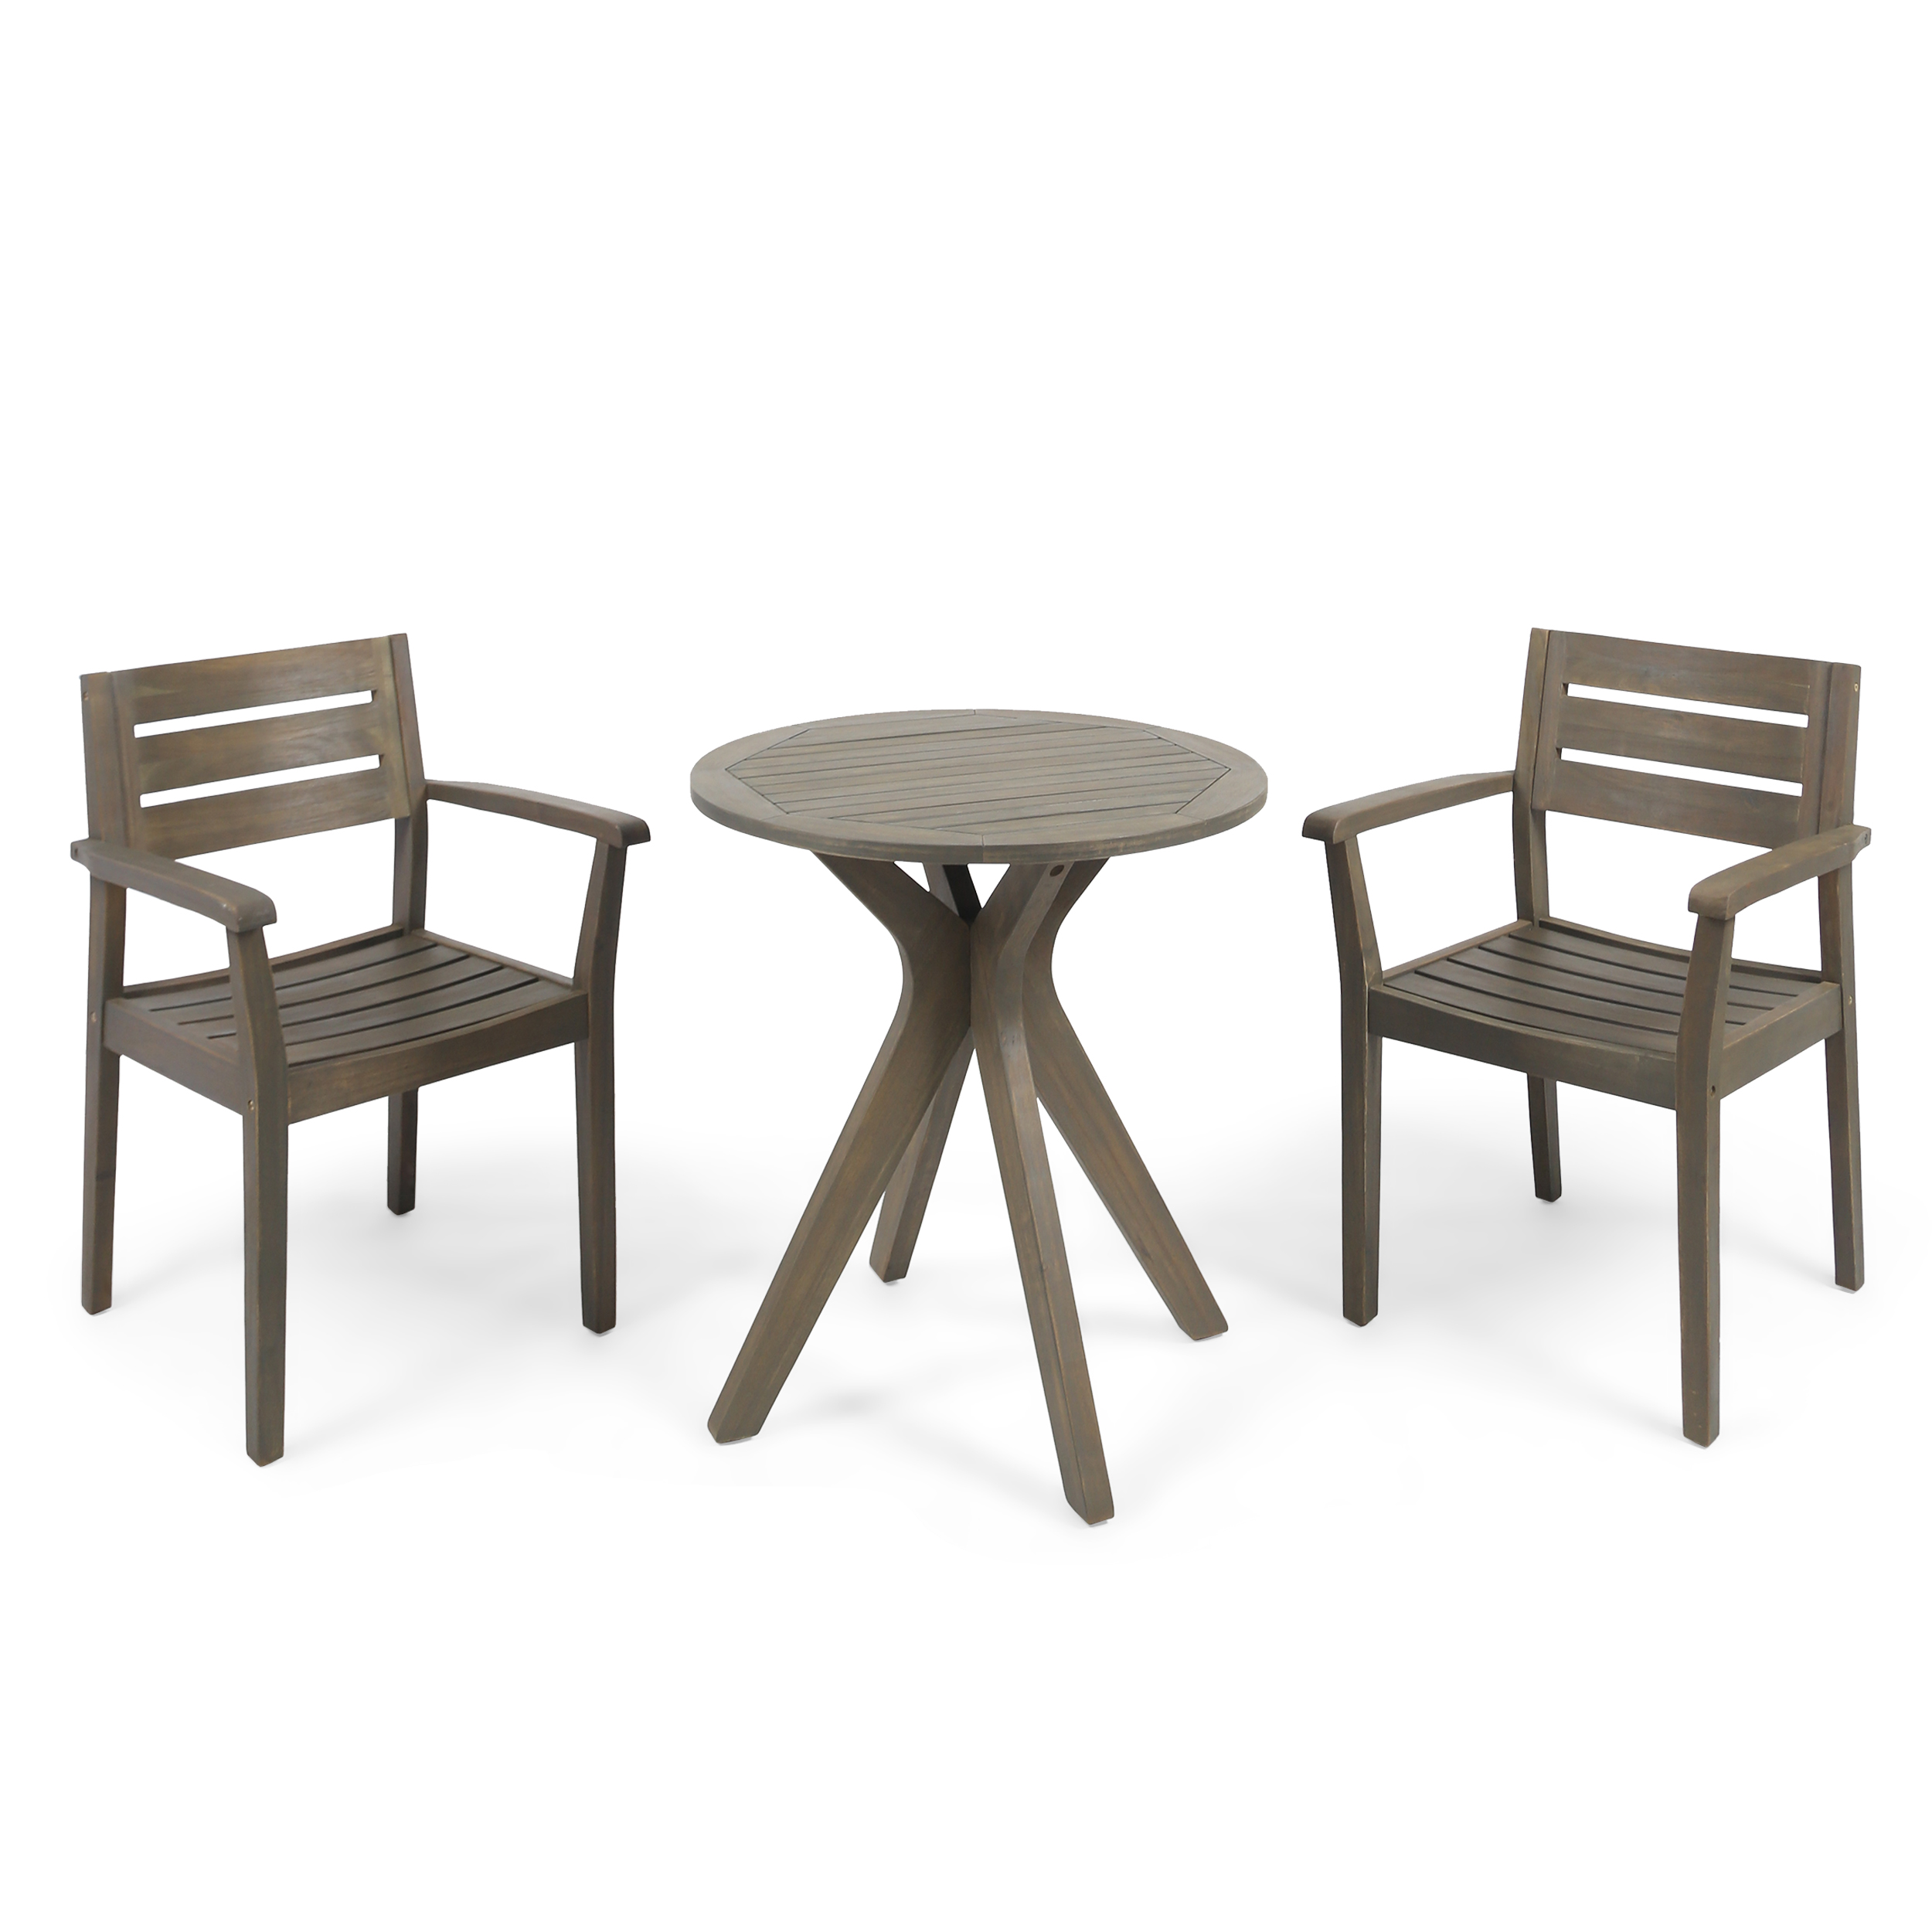 Zack Outdoor 3 Piece Acacia Wood Bistro Set with Cross Legged Bistro Table, Gray Finish